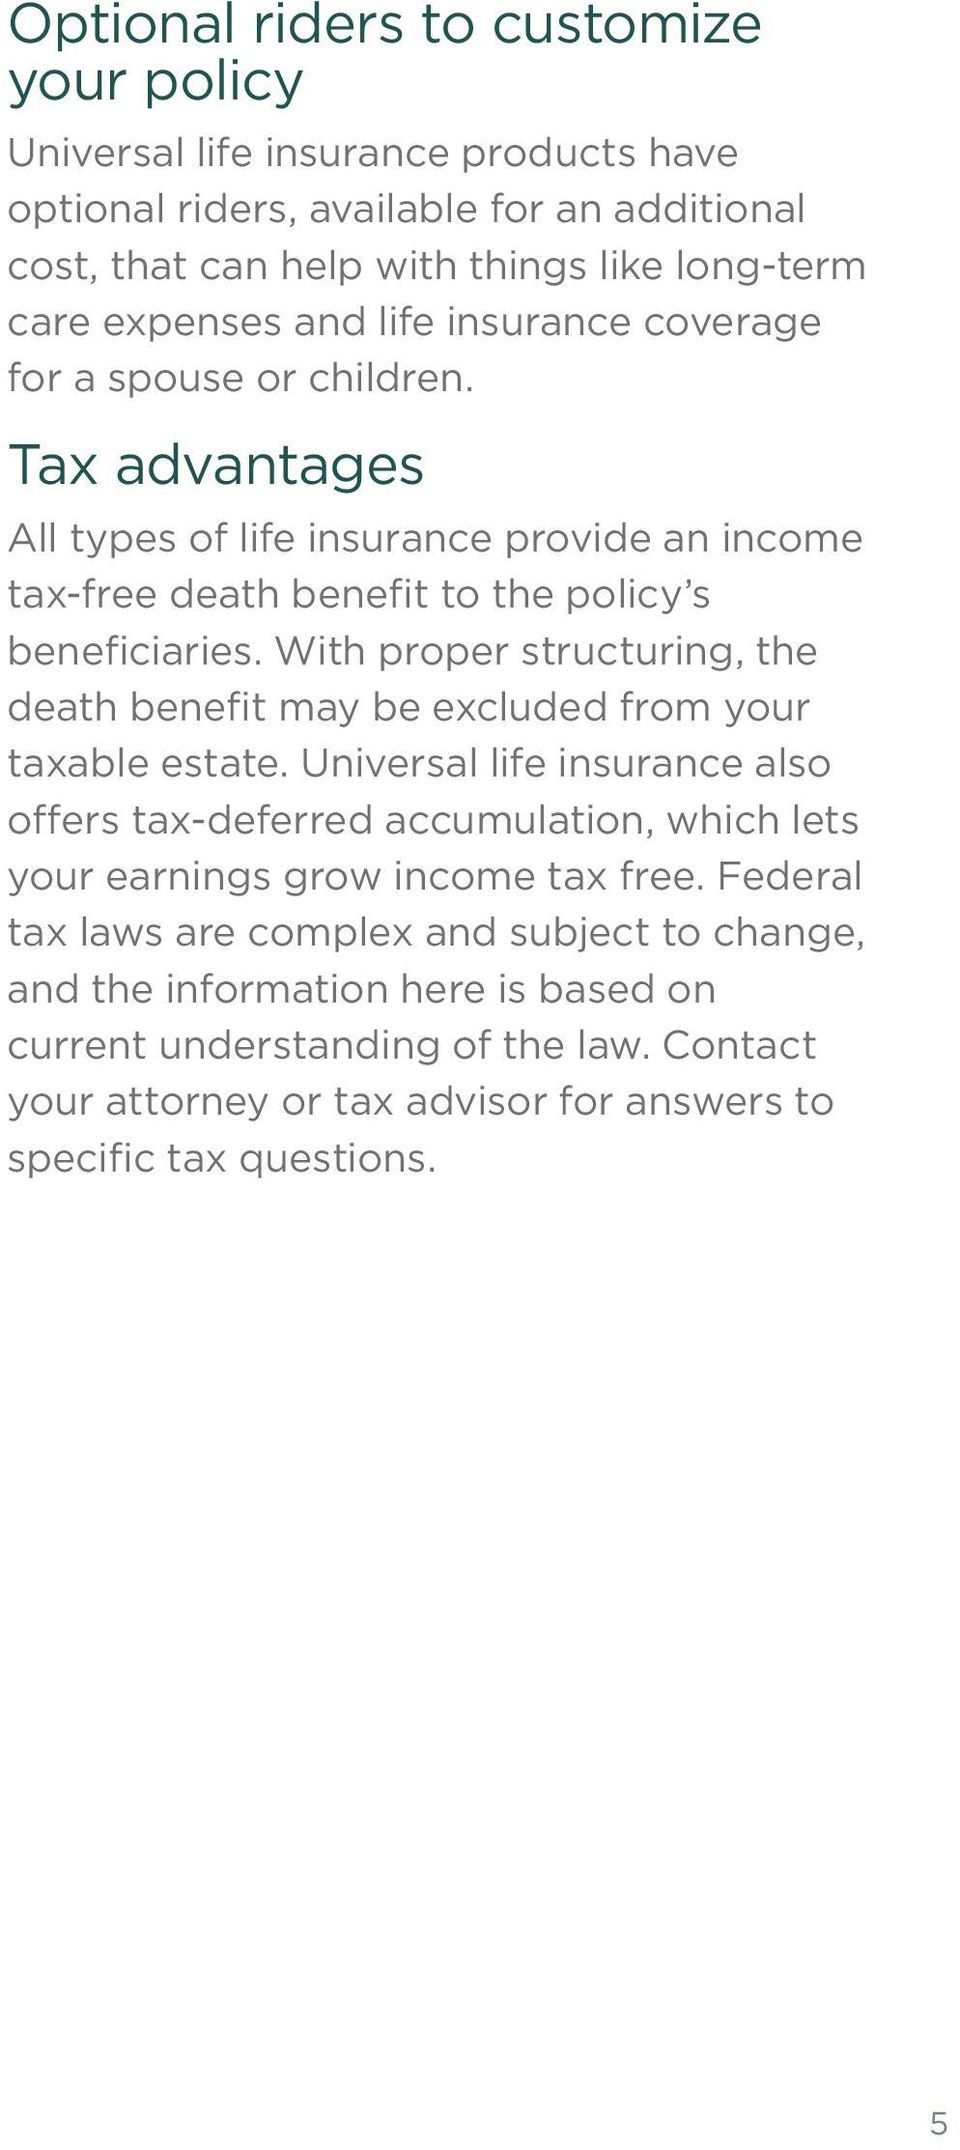 With proper structuring, the death benefit may be excluded from your taxable estate.